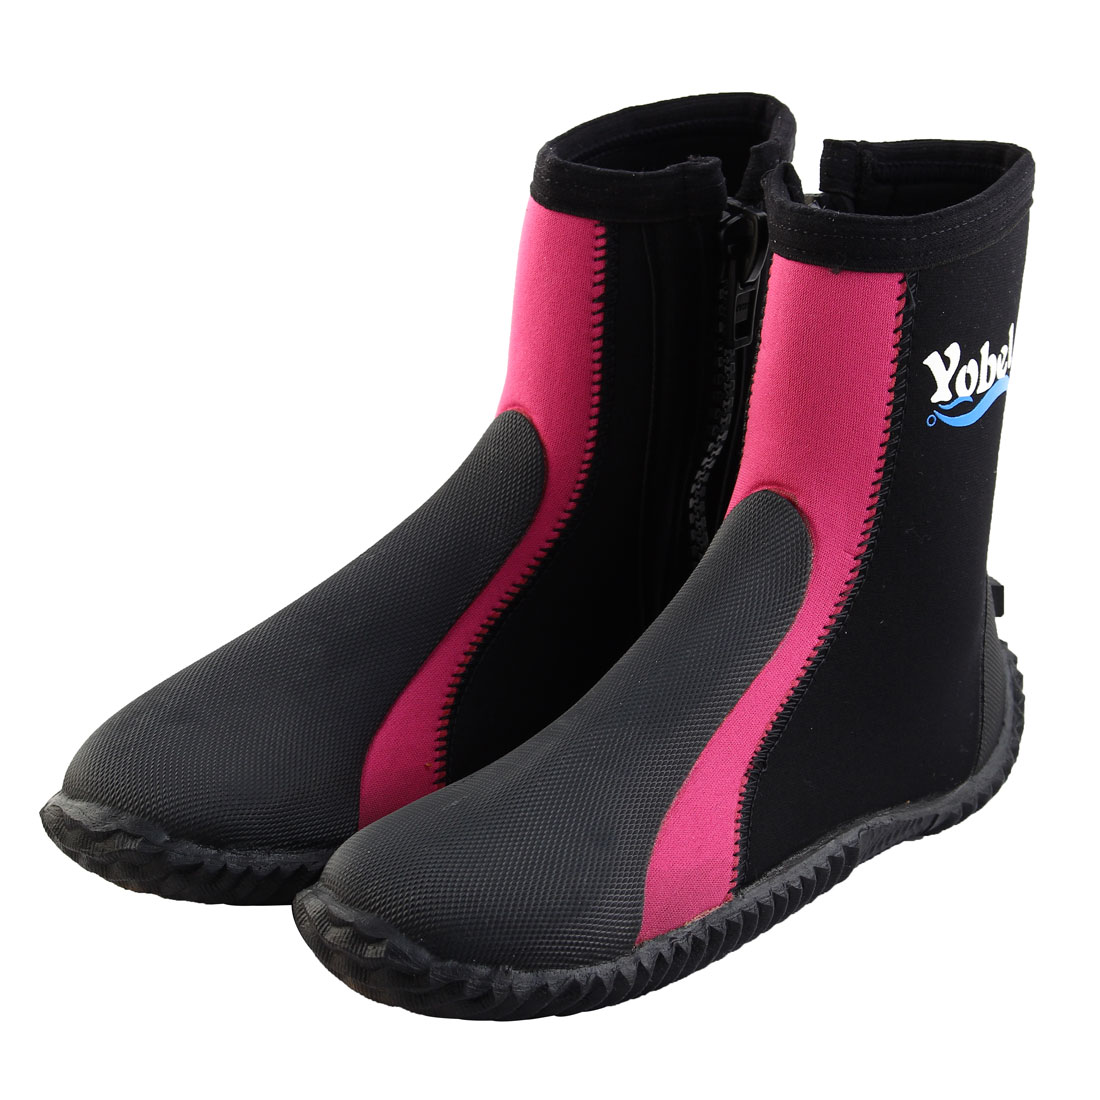 Click here to buy Outdoor Diving Surfing Beach Winter Swimming Anti-slip Wetsuits Water Shoes Boots US 6 Pair Fuchsia by Unique-Bargains.